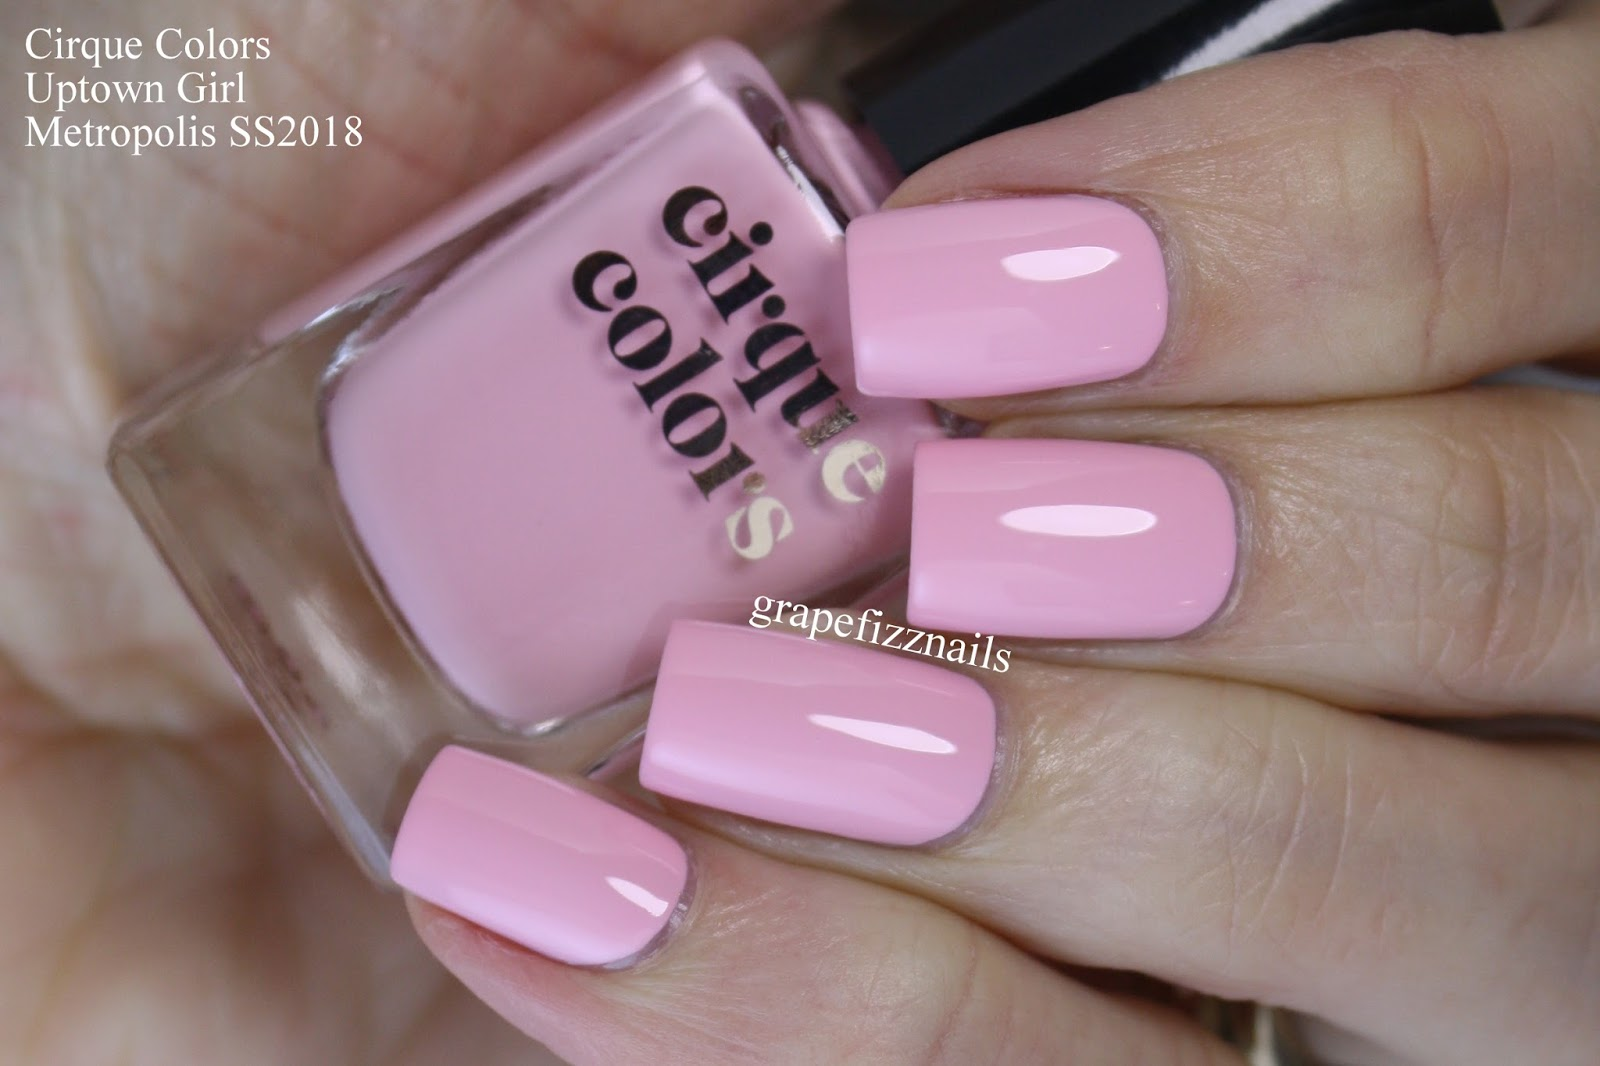 Grape Fizz Nails April 2018 Frnd Cosmetics Uptown Girl Set Bam Is A Vibrant Coral Pink That Screams Summer This One Of My Faves From The Collection For Sure I Used 3 Coats Swatches To Really Get Full